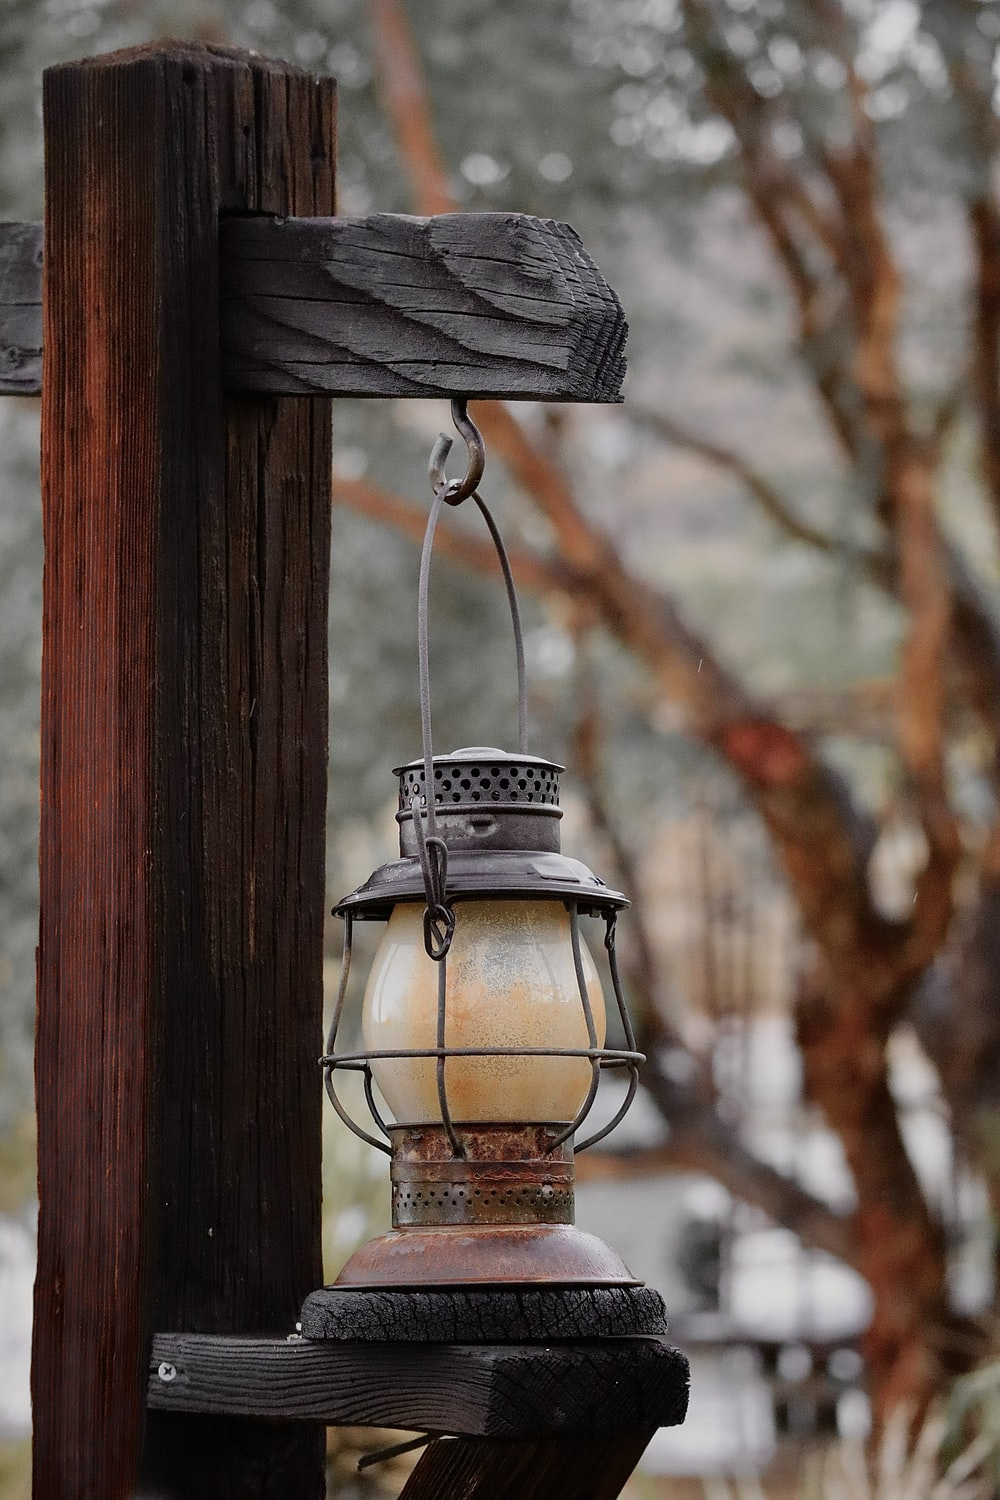 brown and white lamp on brown wooden post